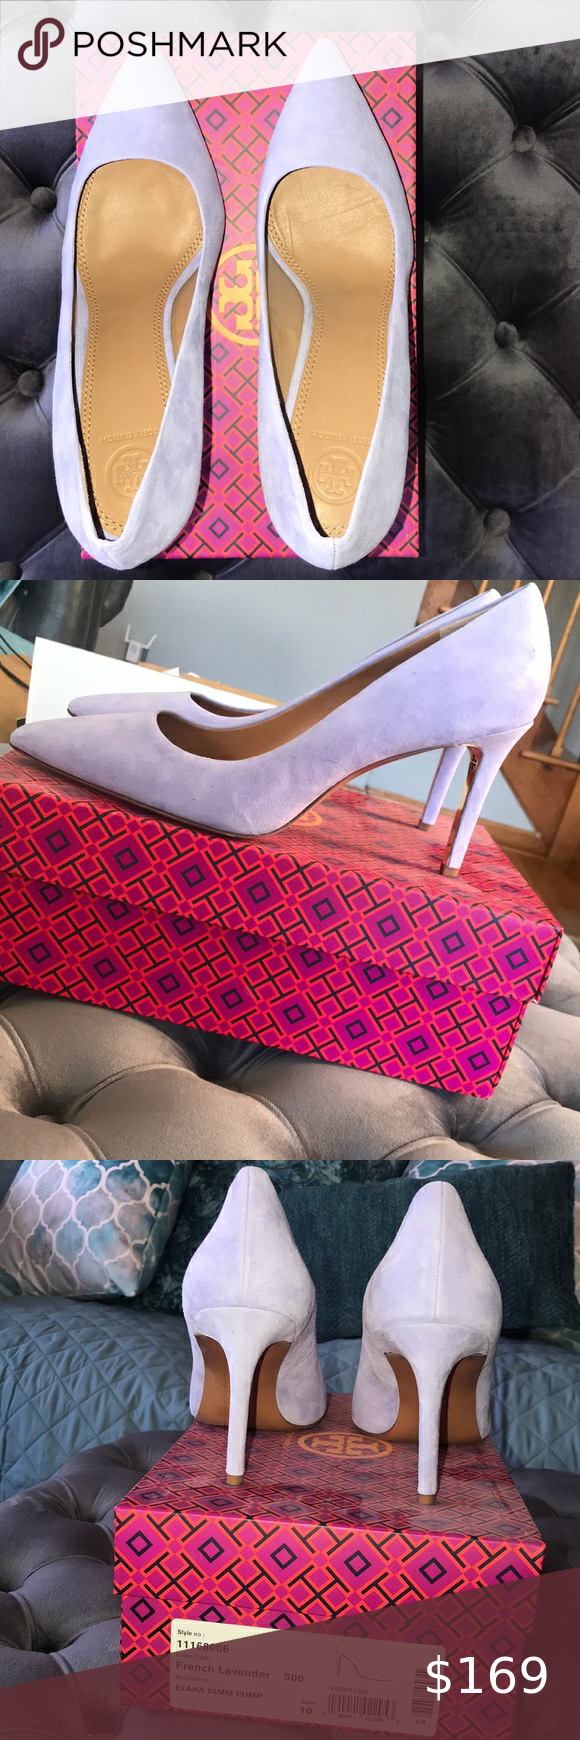 Christian Louboutin 80% OFF!>> Tory Burch Heels Tory Burch Elana French Lavender suede Pumps. Never worn. Runs true to size 100% leather Upper🦋 Tory Burch Shoes Heels #ChristianLouboutin #heels #shoes #style #Accessories #shopping #styles #outfit #pretty #girl #girls #beauty #beautiful #me #cute #stylish #design #fashion #outfits #diy #design